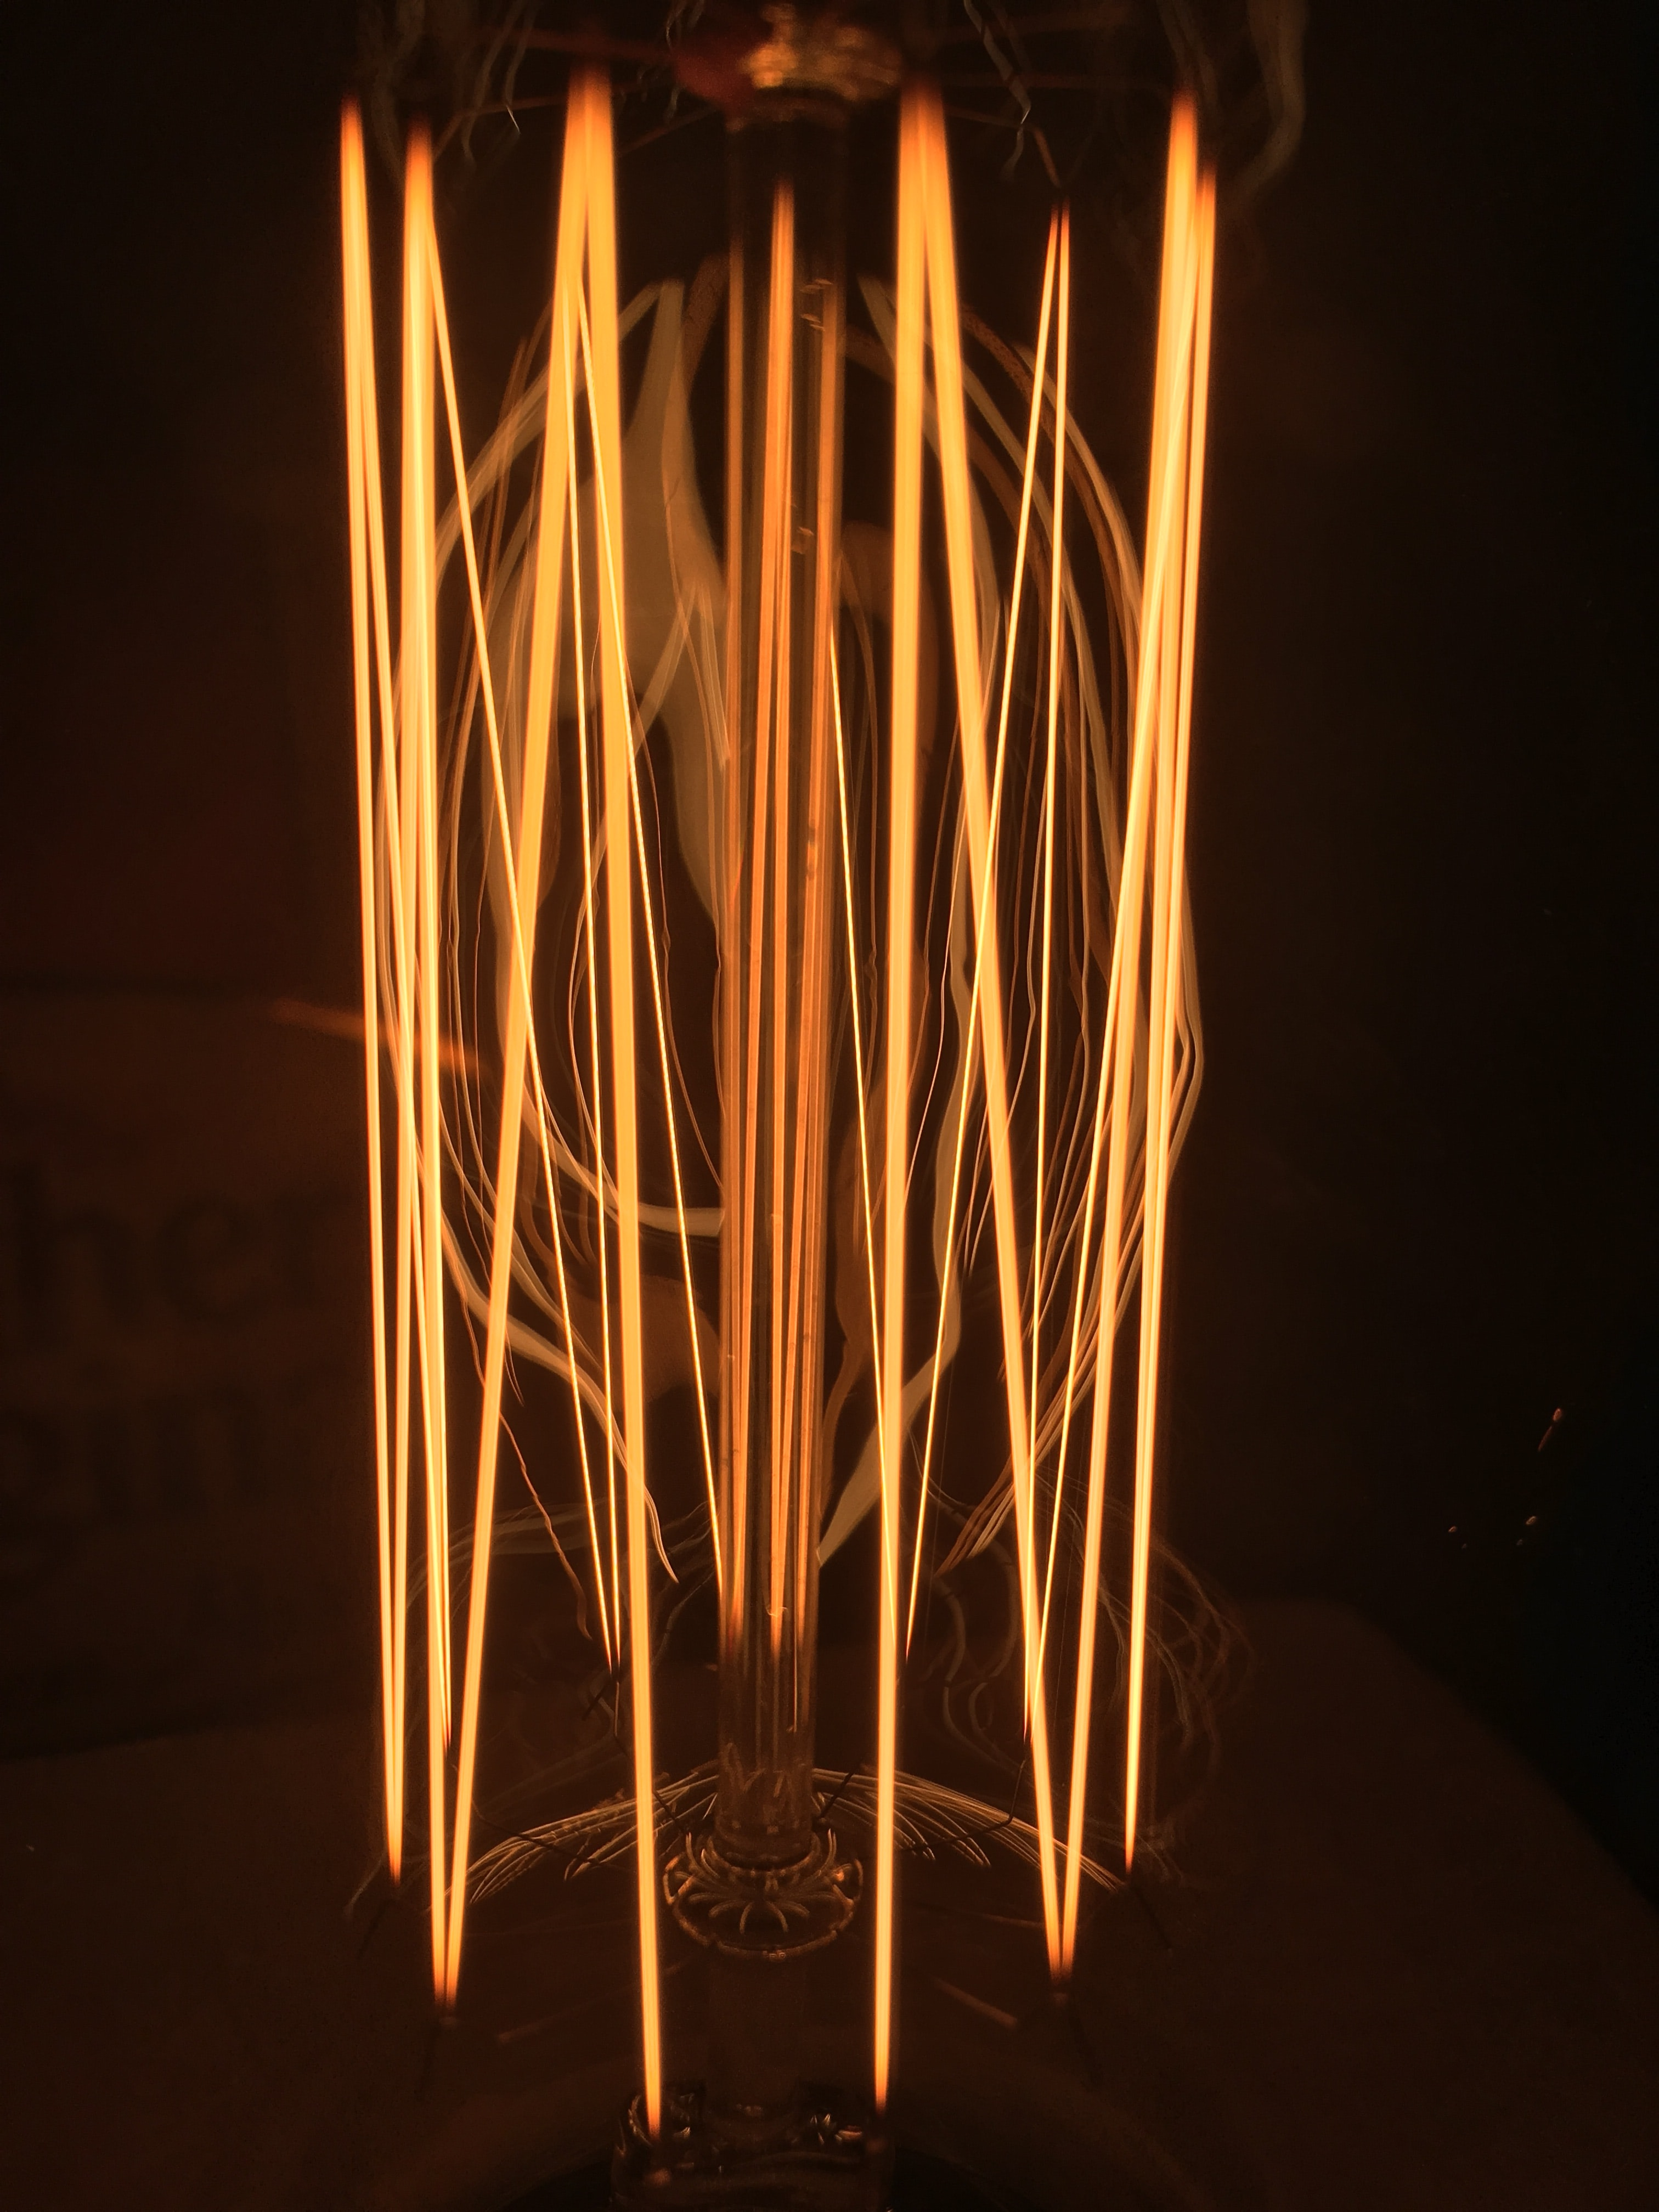 closeup photo of turned on filament bulb